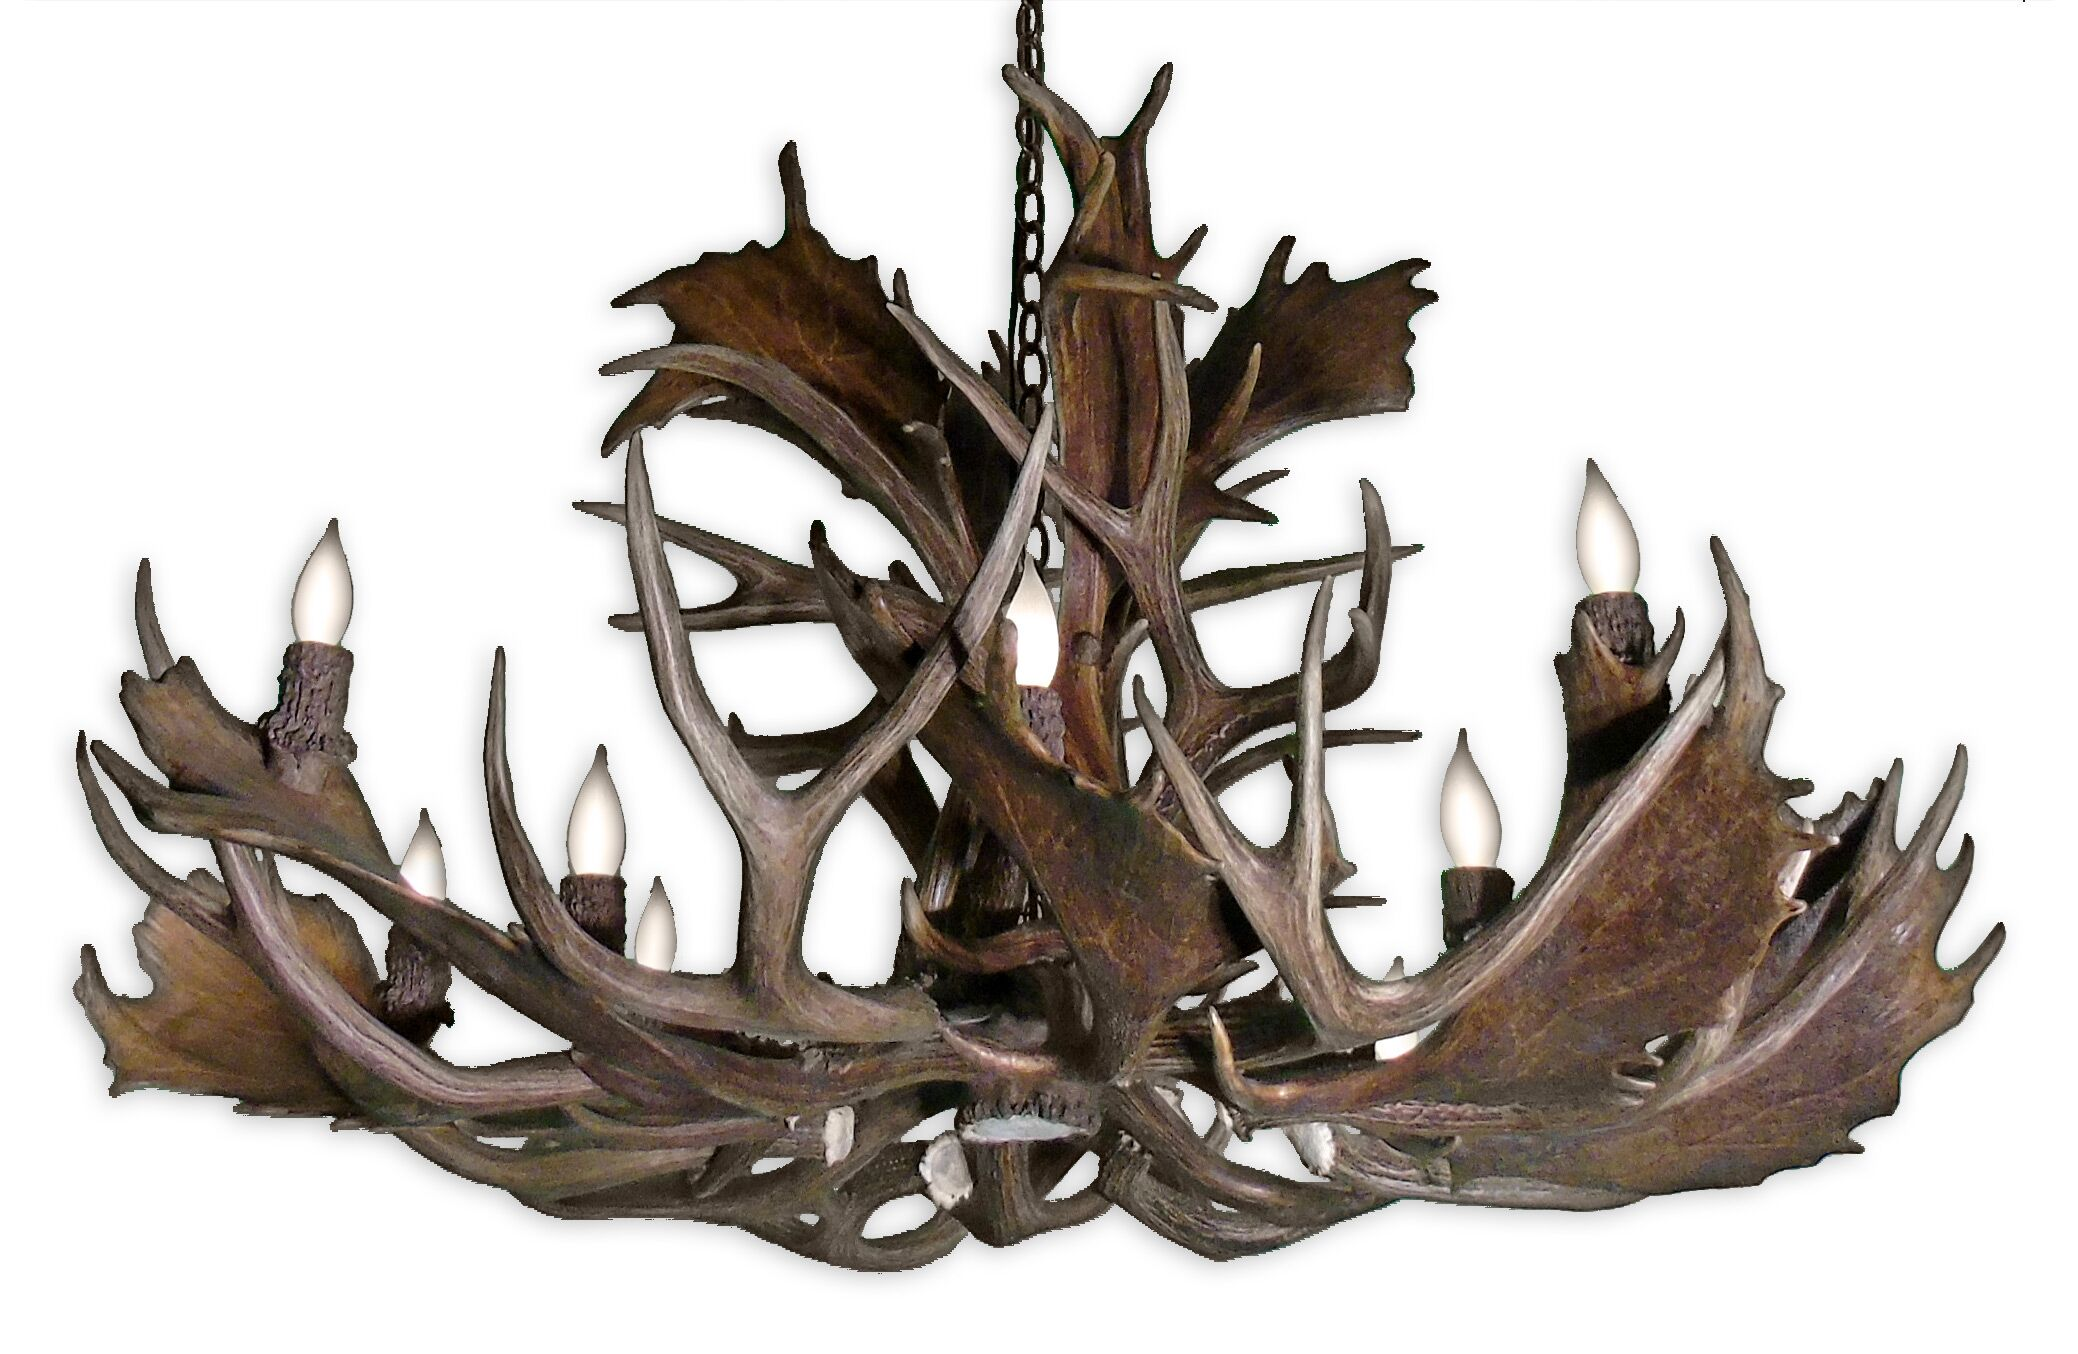 Prather Fallow 12-Light Novelty Chandelier Shade Color: No Shade, Finish: Rustic Bronze Chain/Natural Brown Antlers, Size: 24